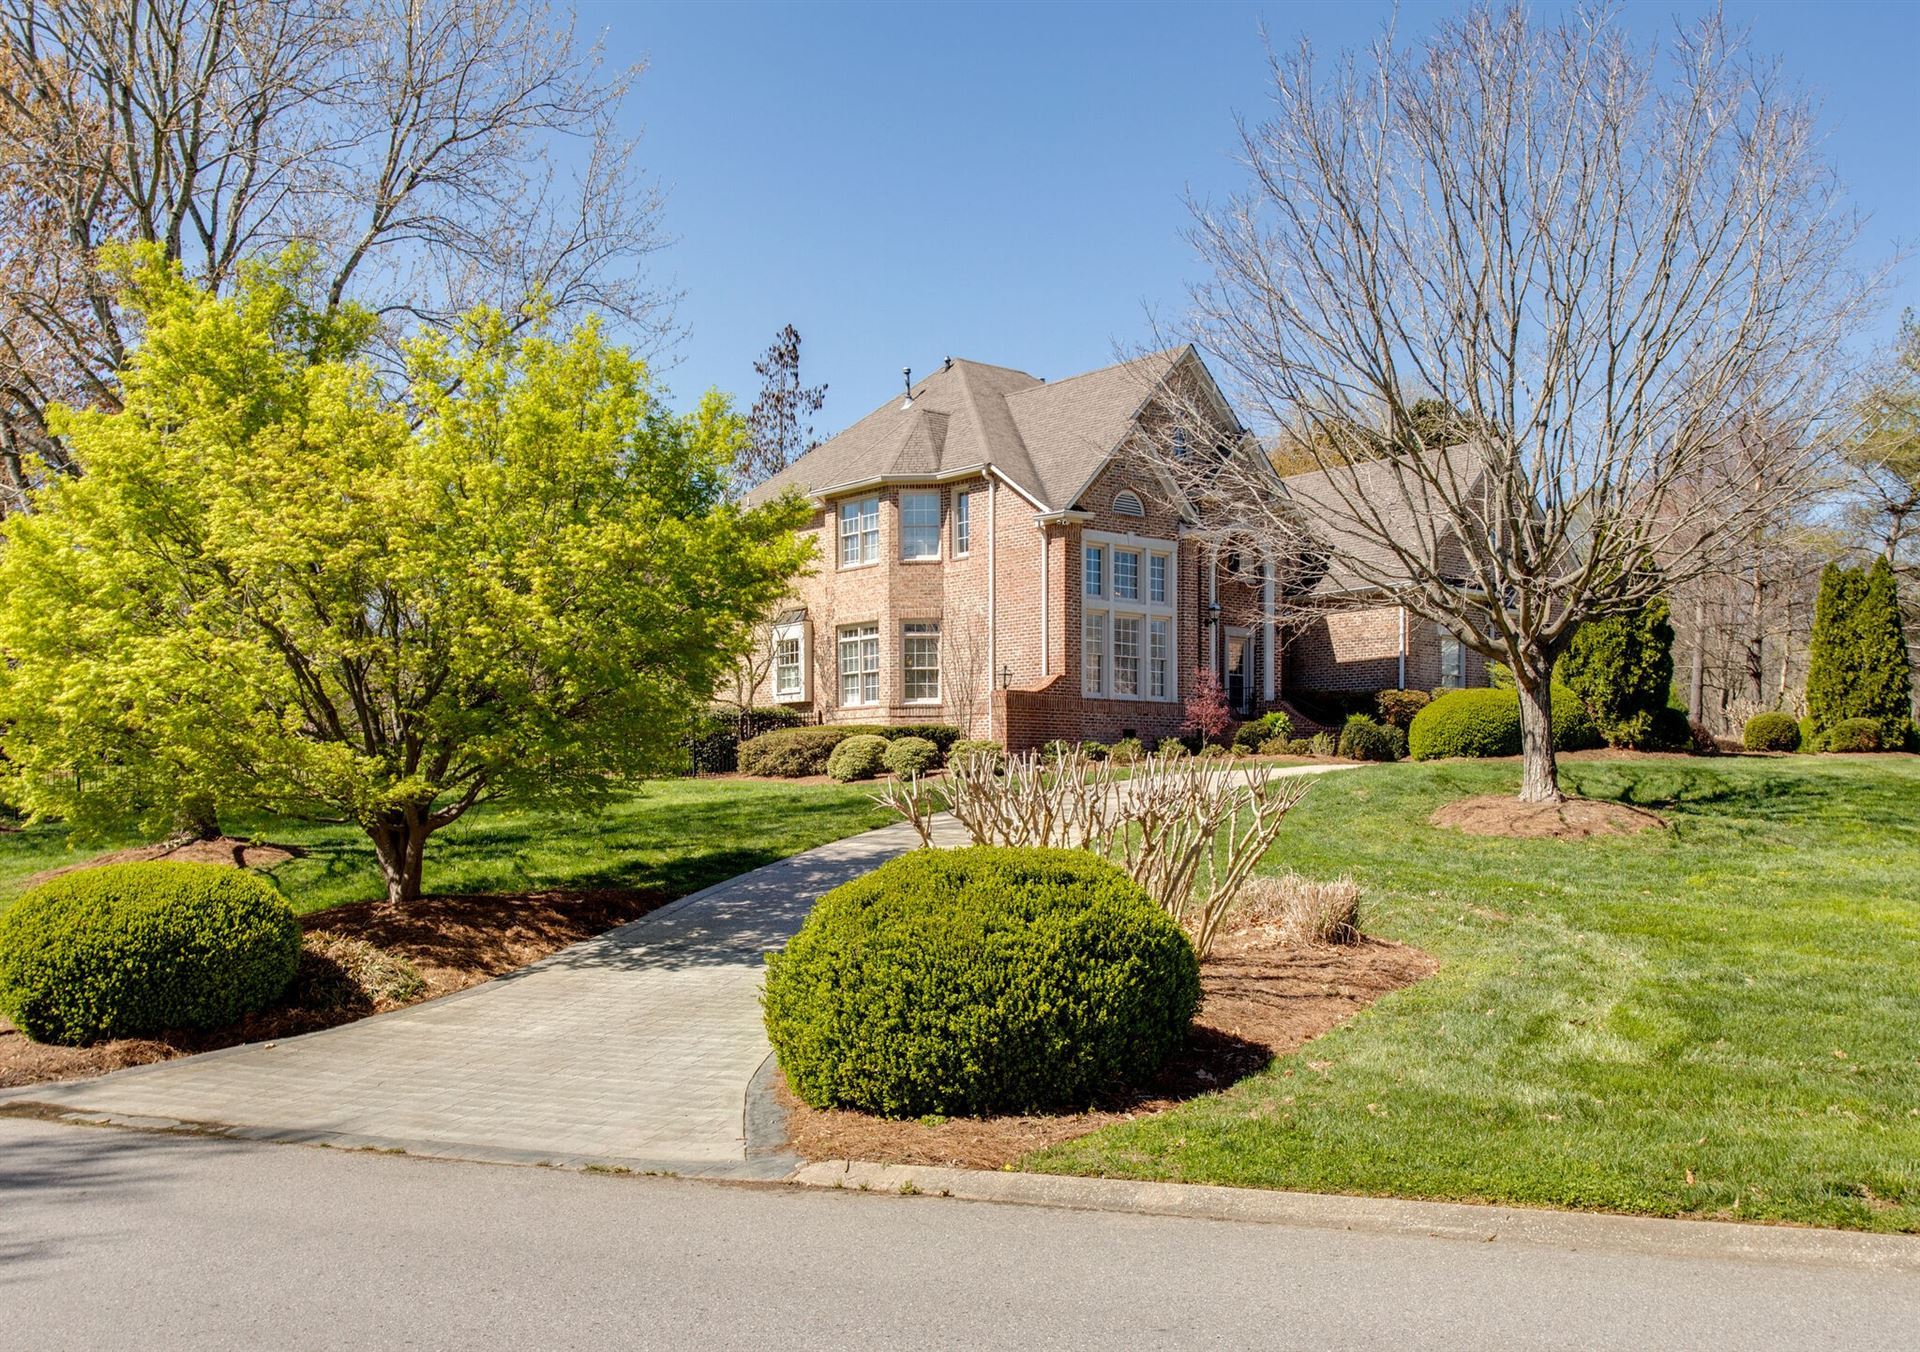 Photo of 9606 Brunswick Dr, Brentwood, TN 37027 (MLS # 2237505)